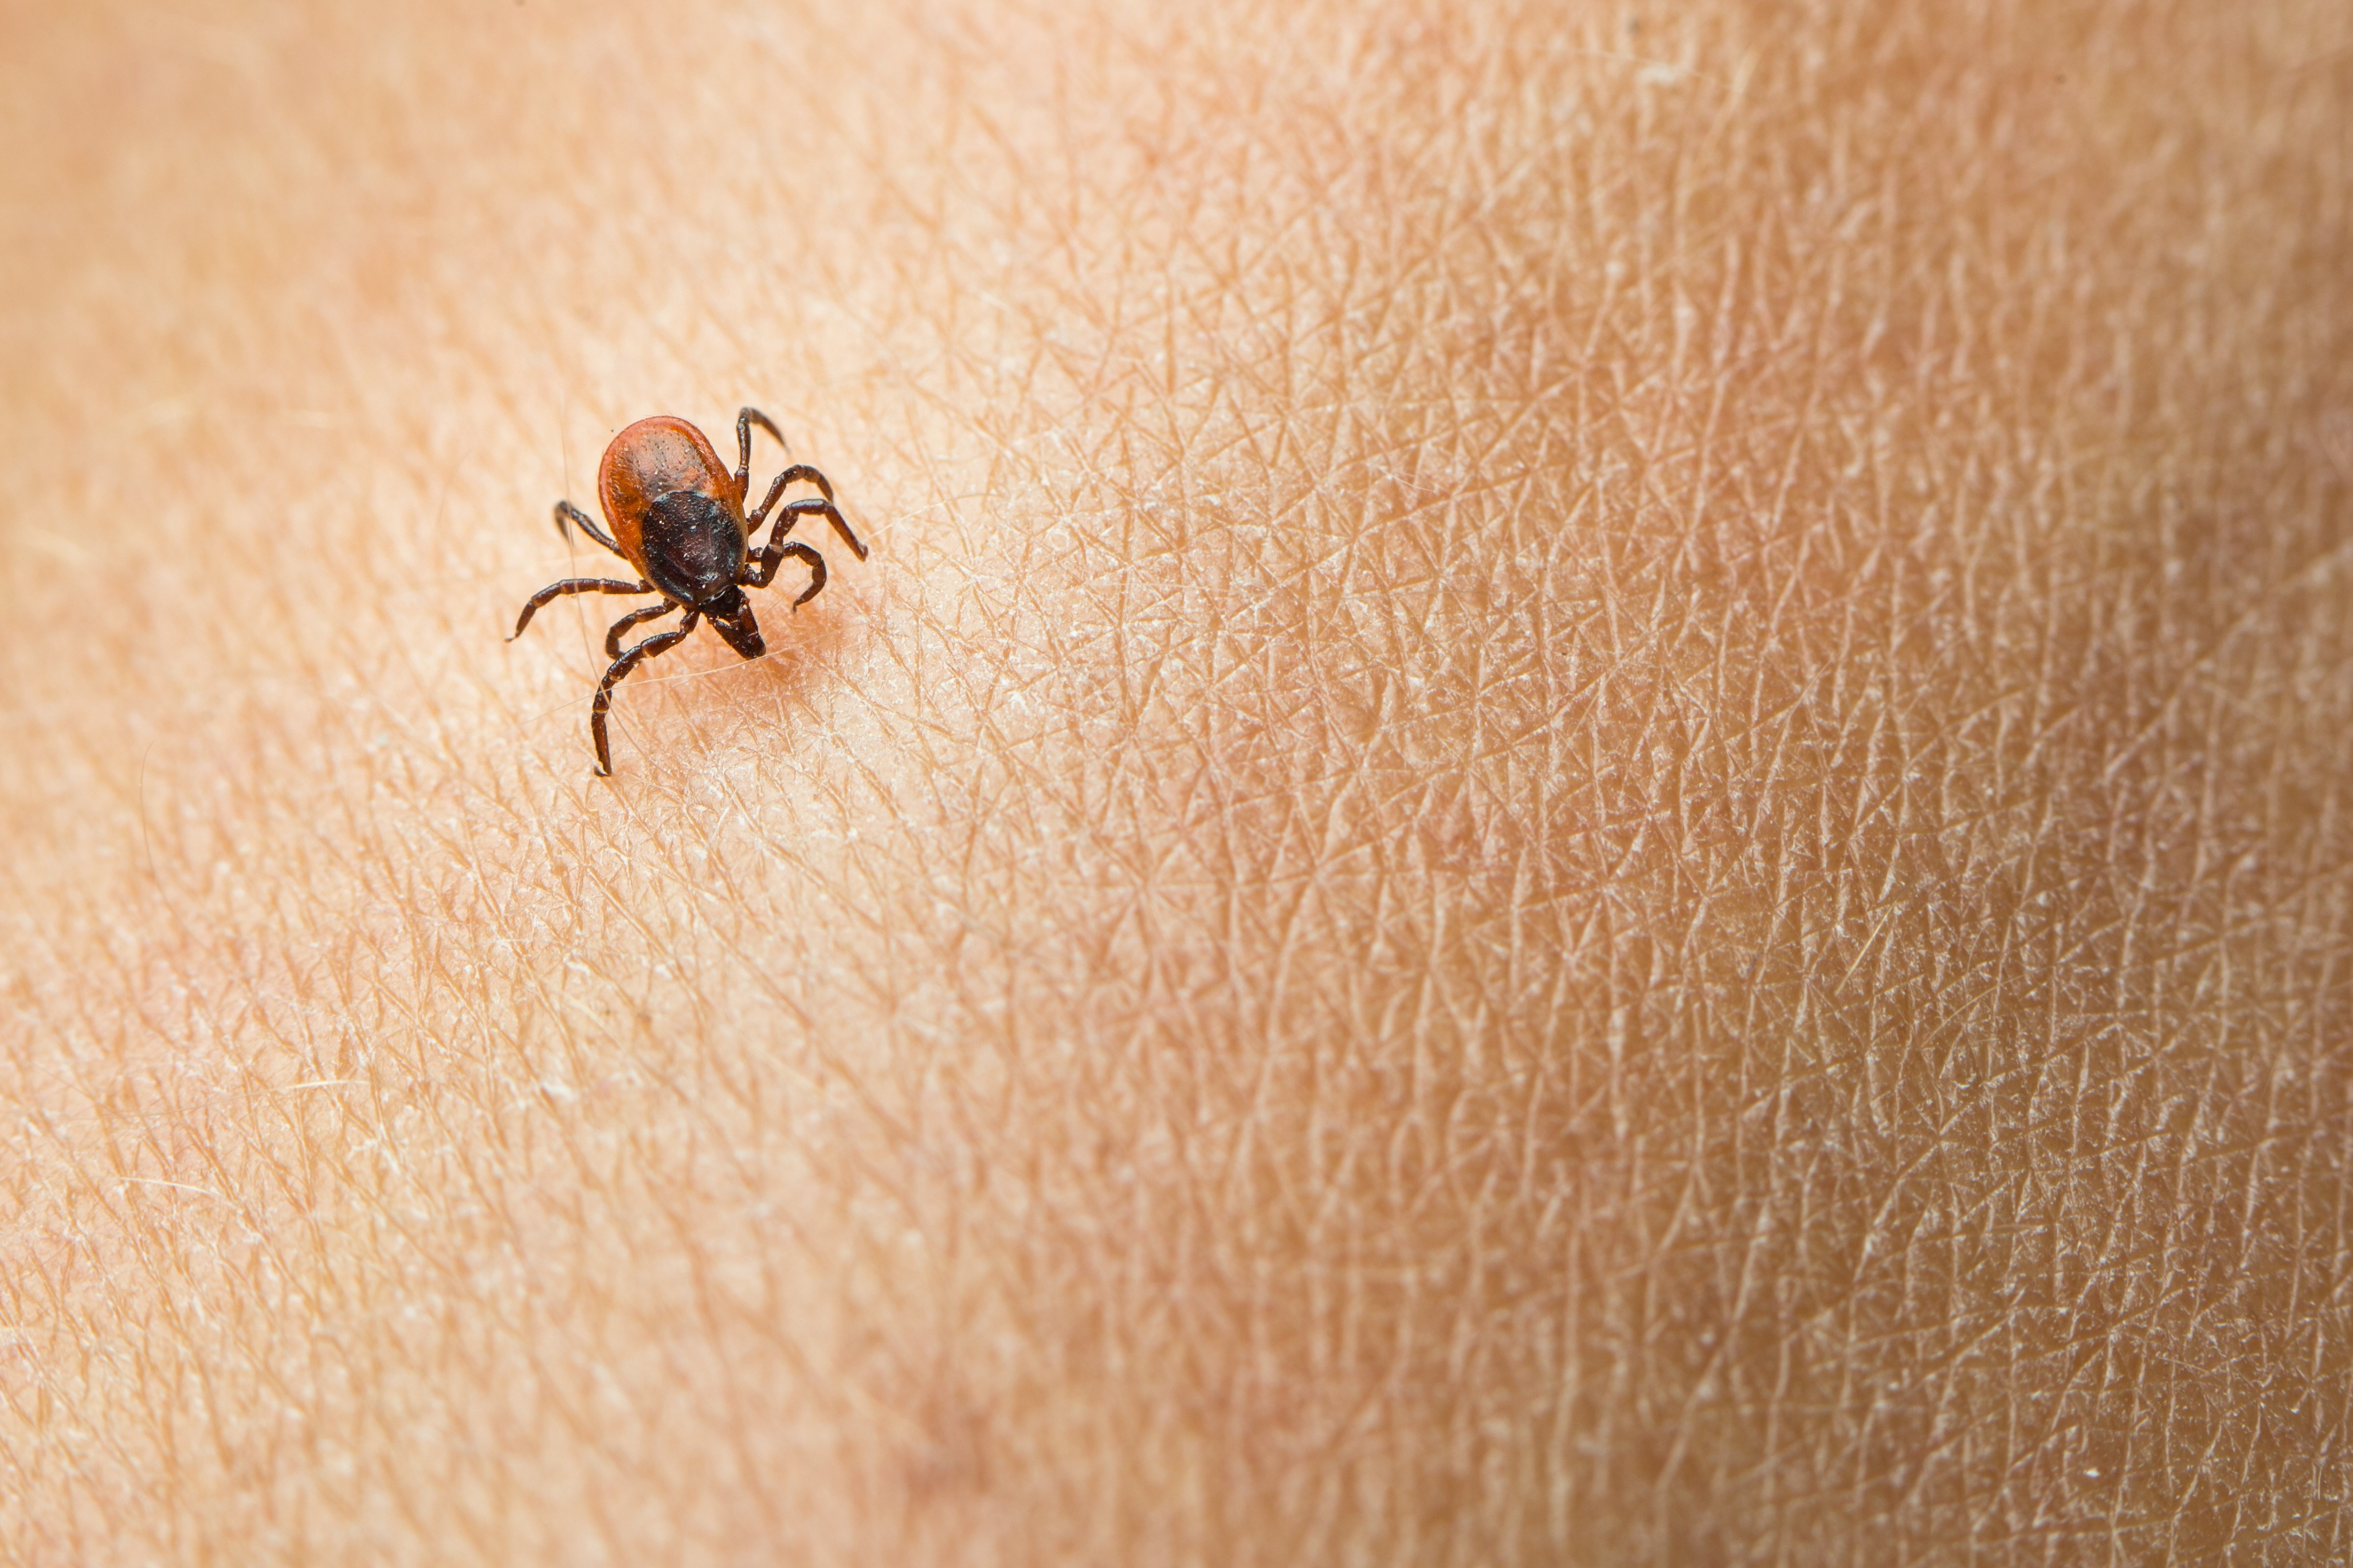 While ticks can be active all year round, they are most common in spring and fall.